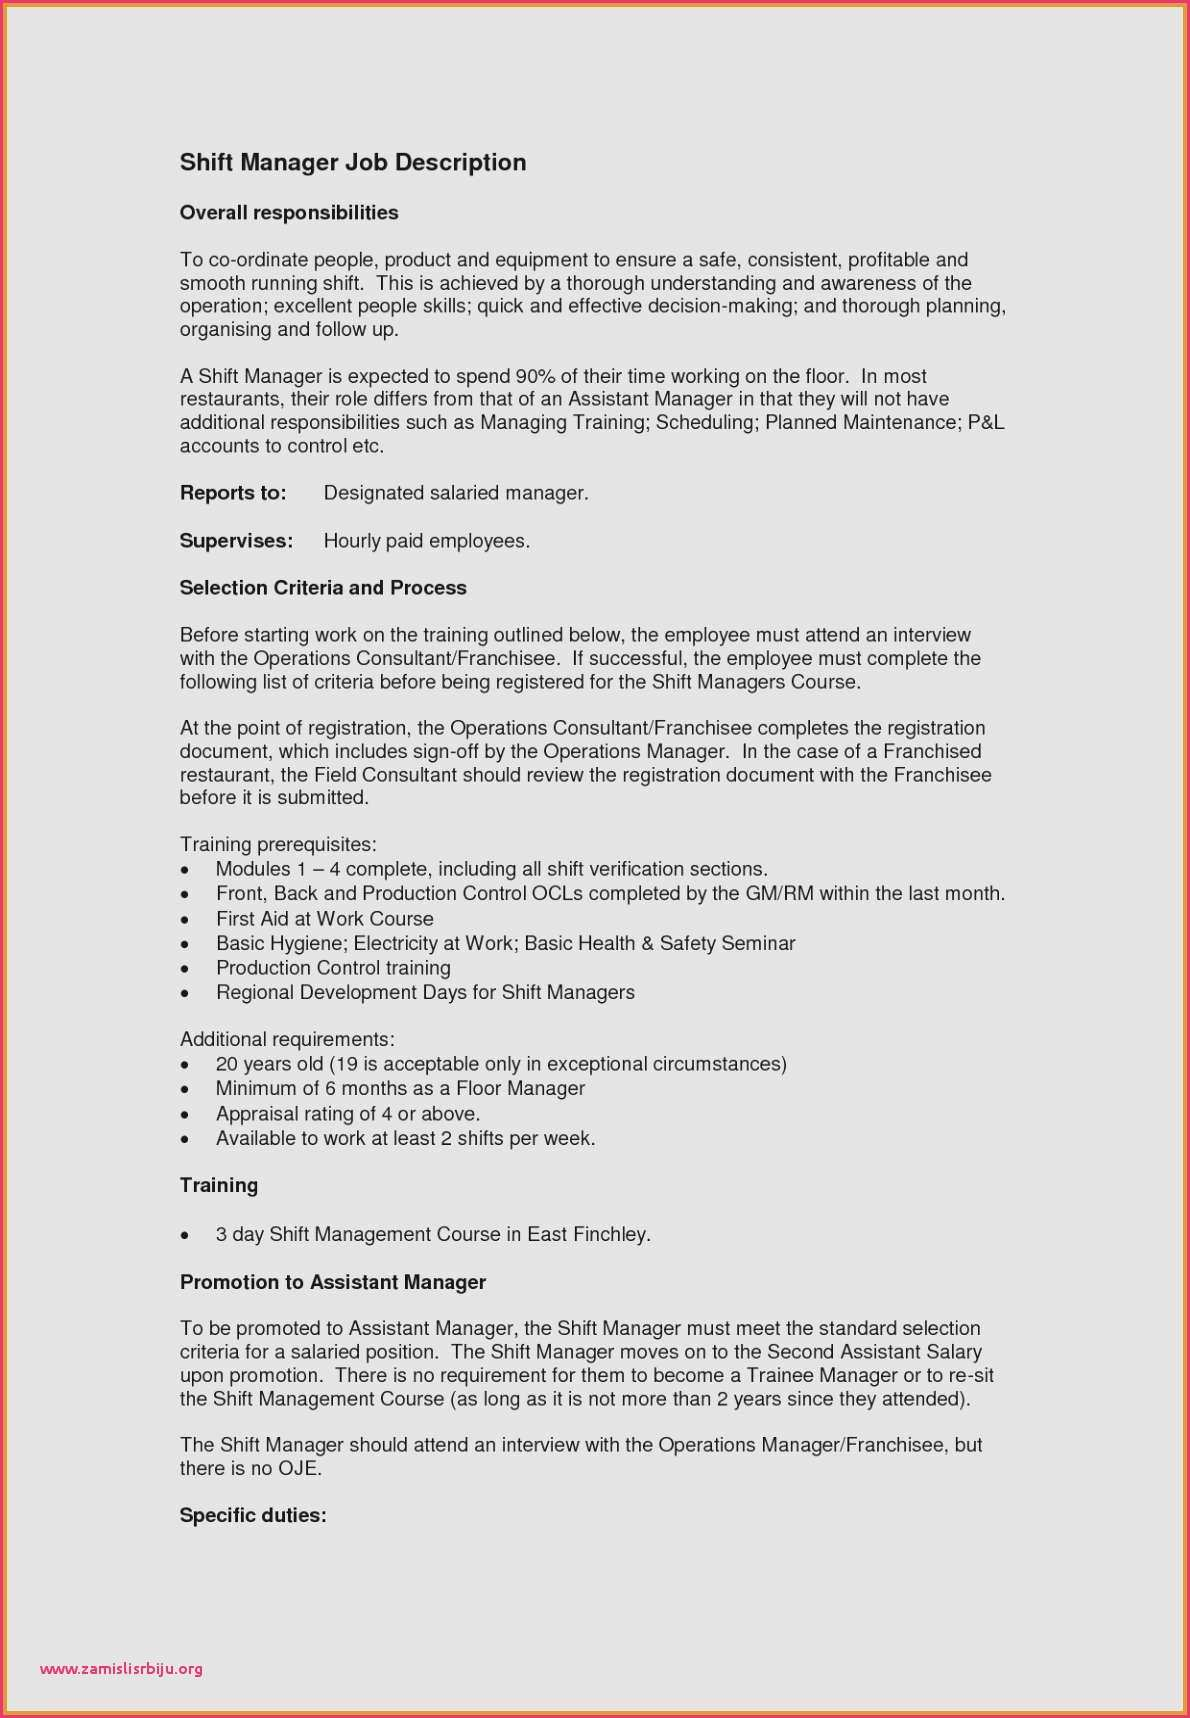 Shift Manager Resume - Shift Manager Resume Data Center Manager Resume Free Resume Template